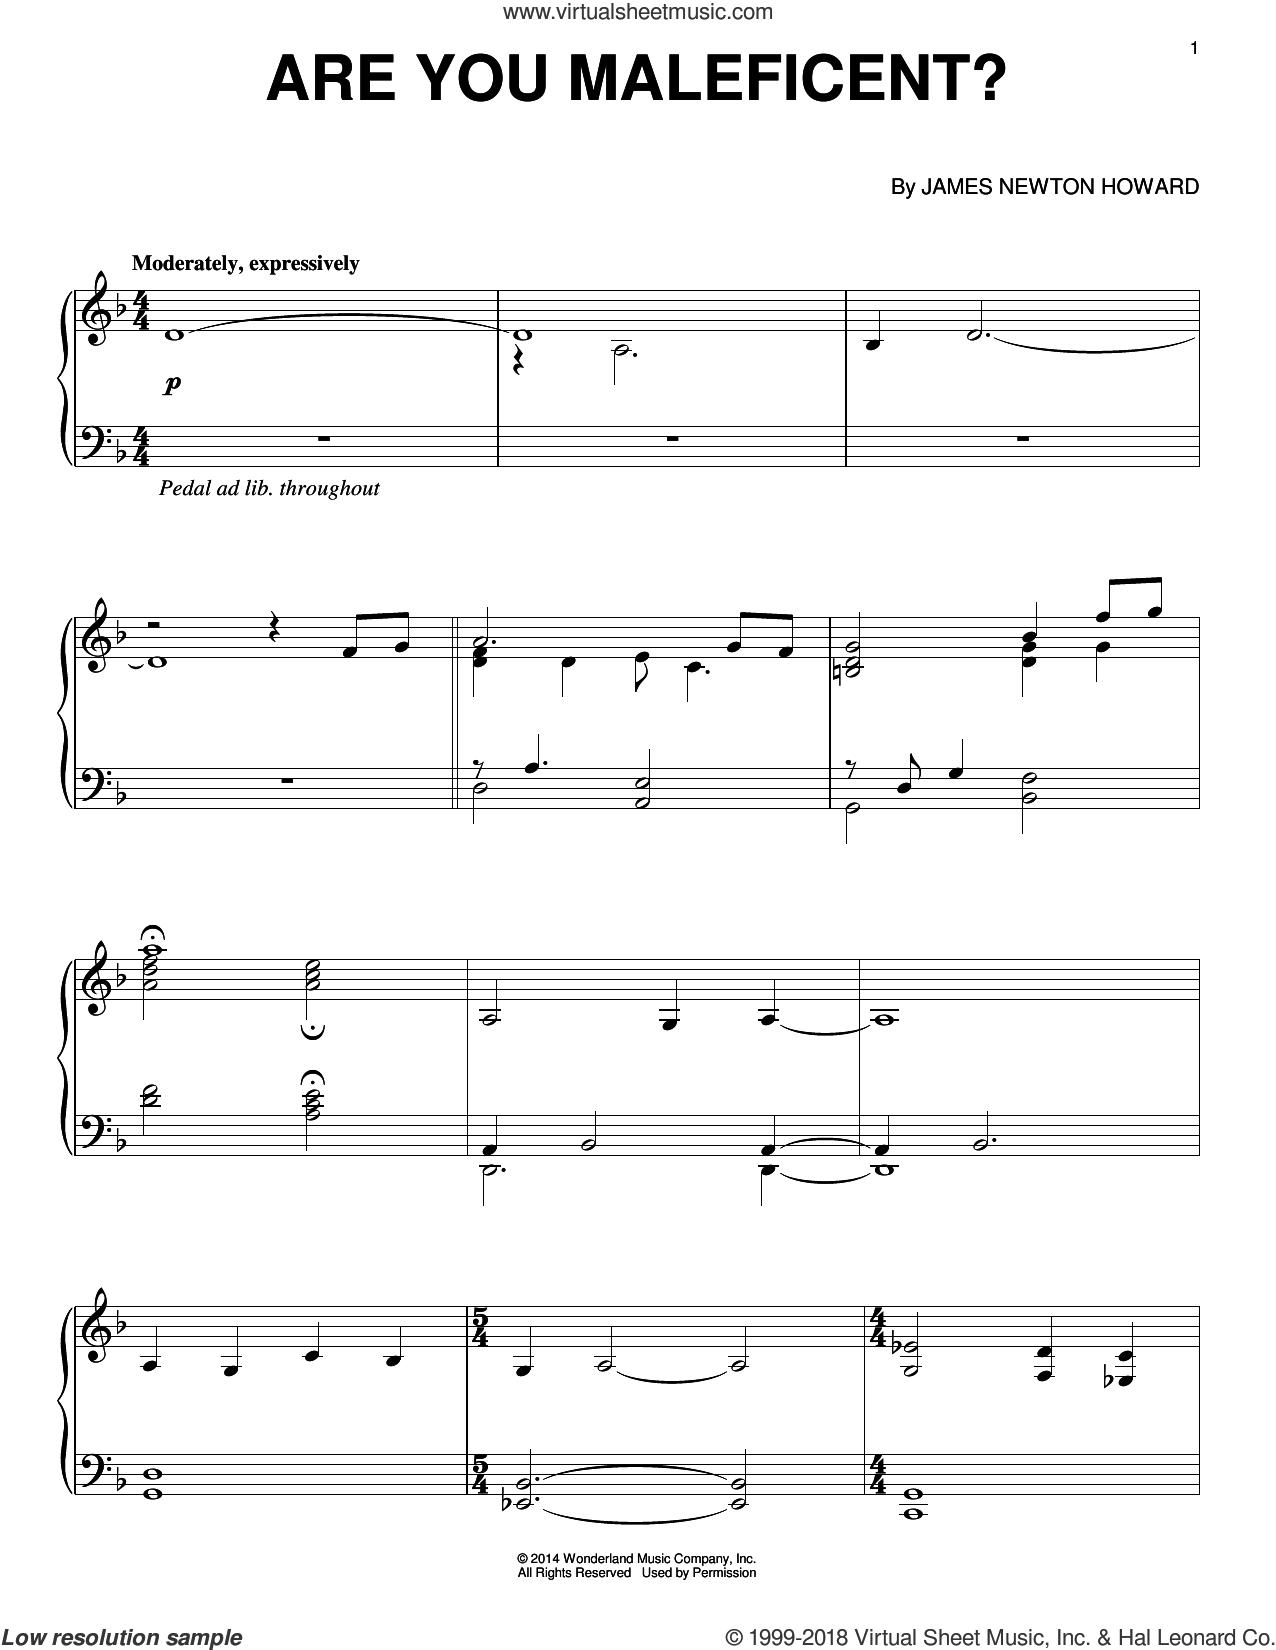 Are You Maleficent? sheet music for piano solo by James Newton Howard, intermediate